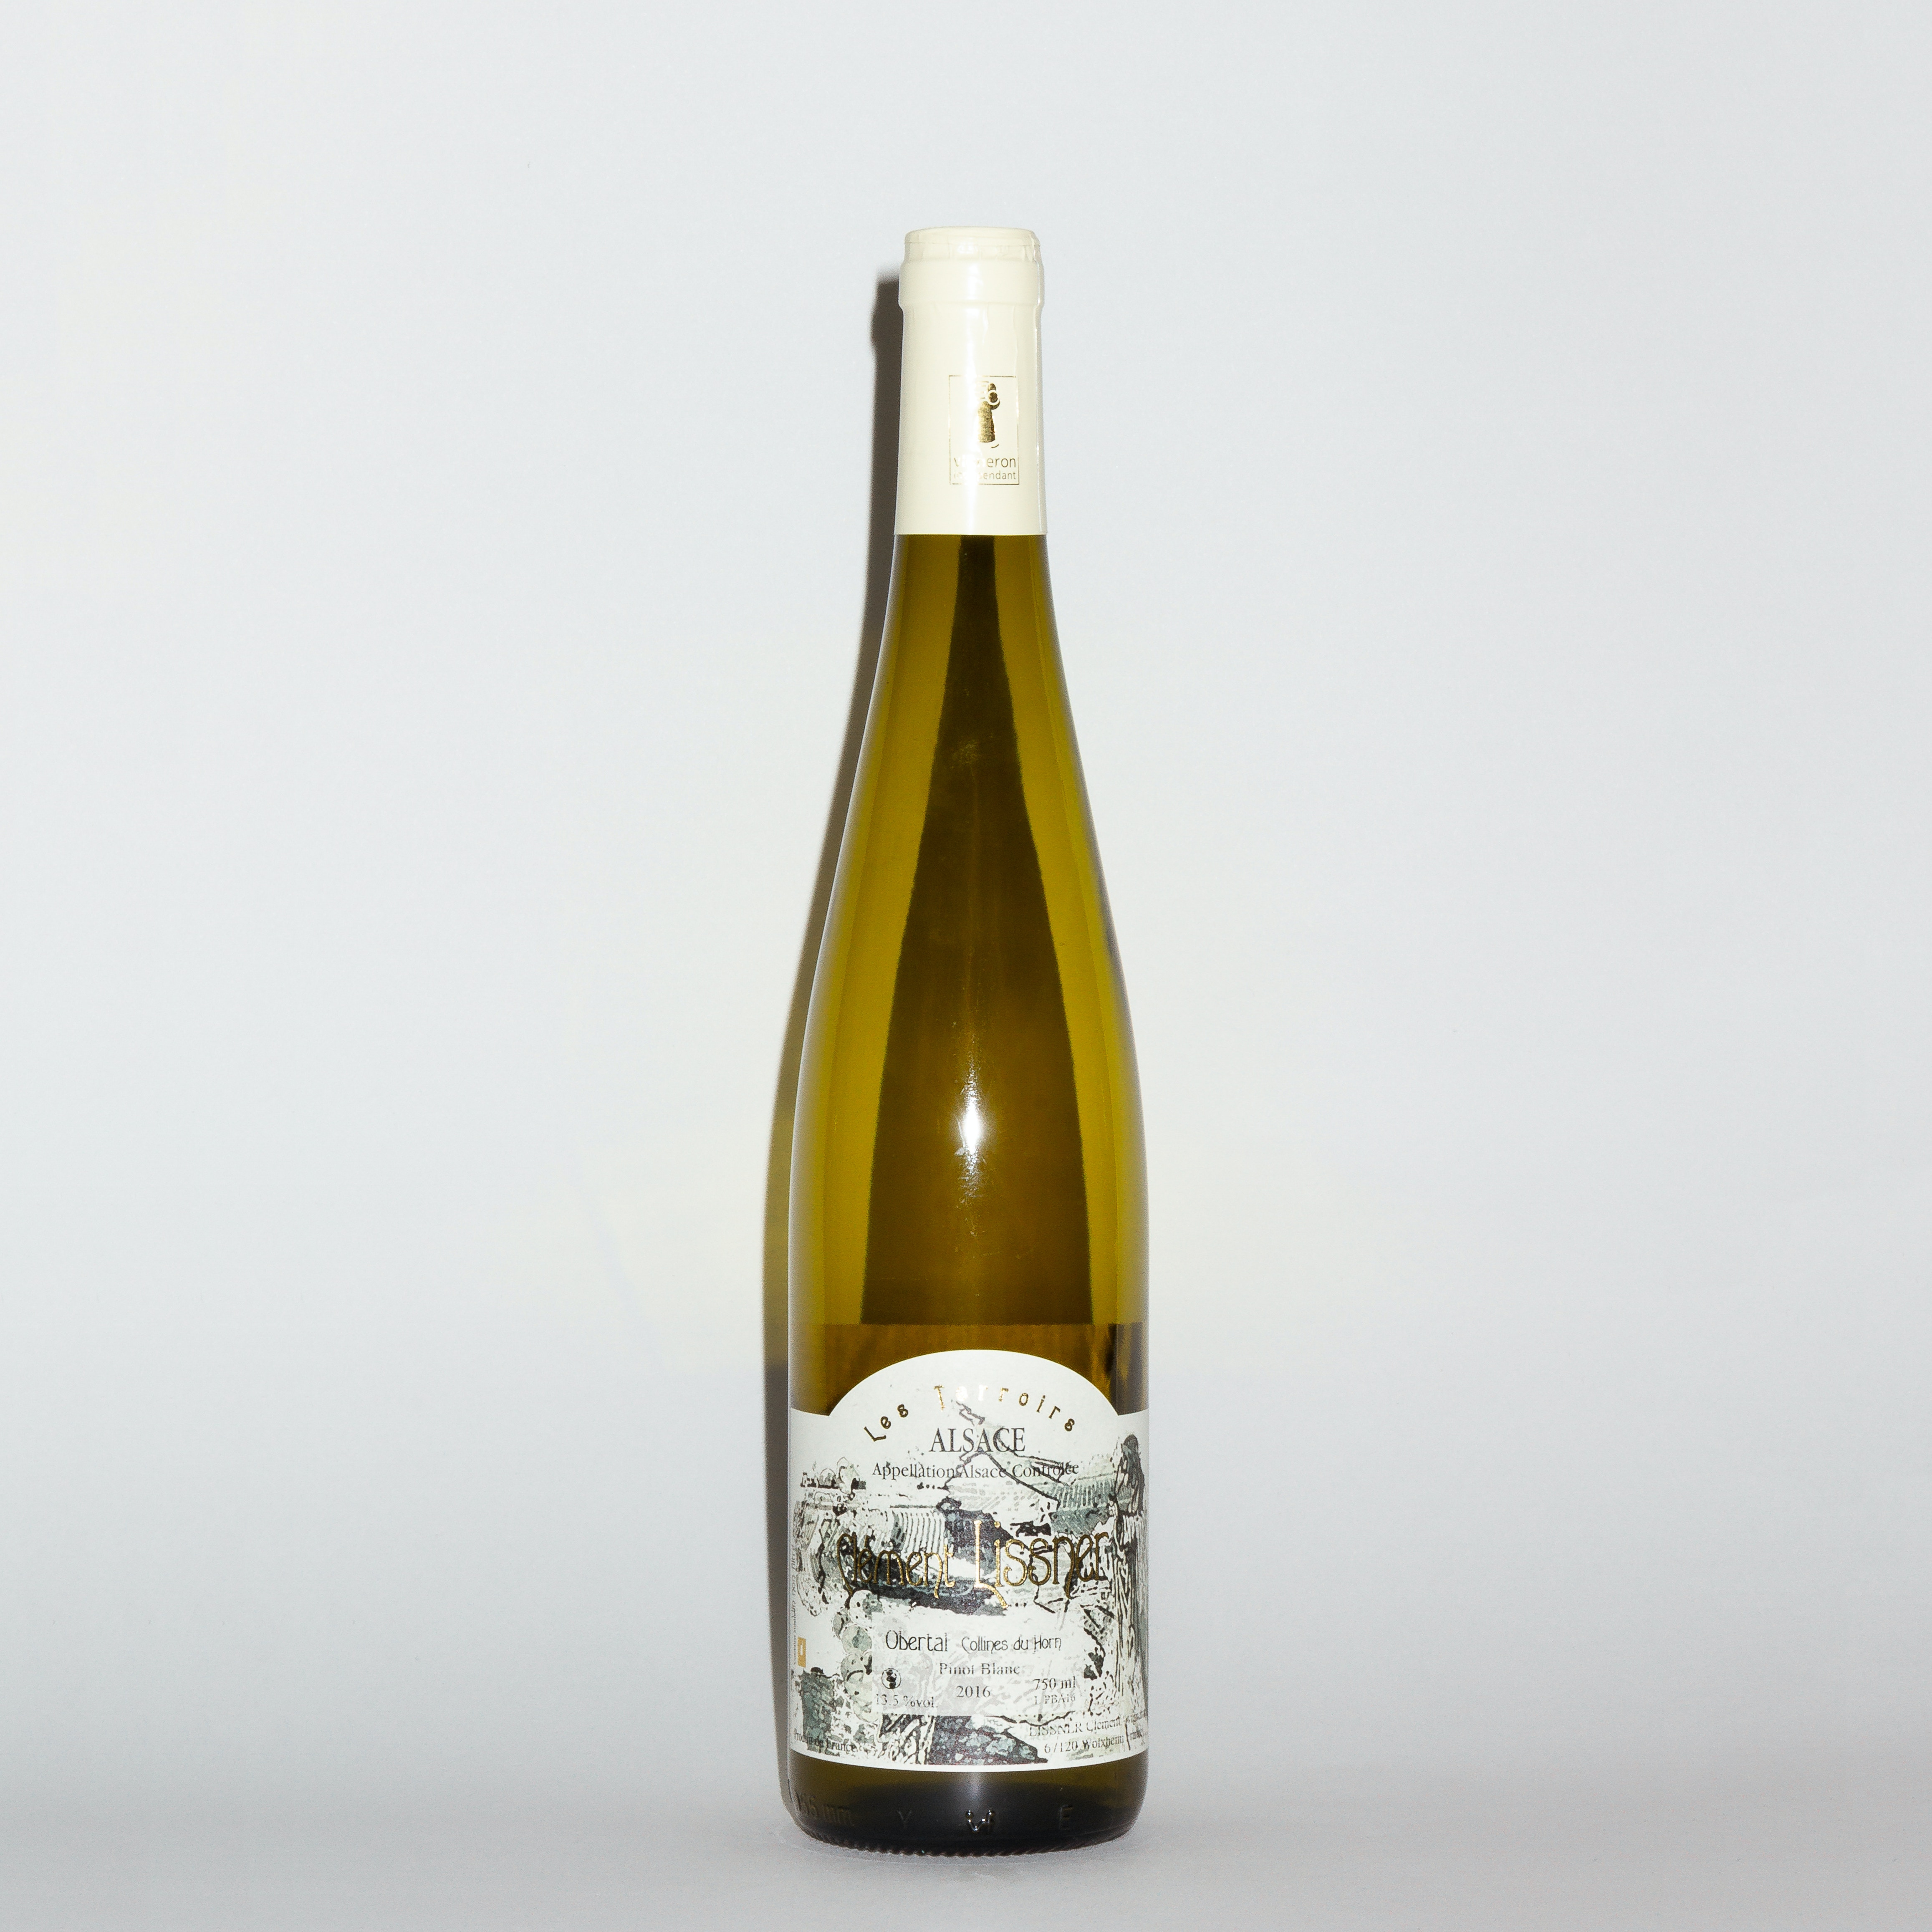 Obertal Collines du Horn Pinot Blanc 2016 by Domaine Clément Lissner